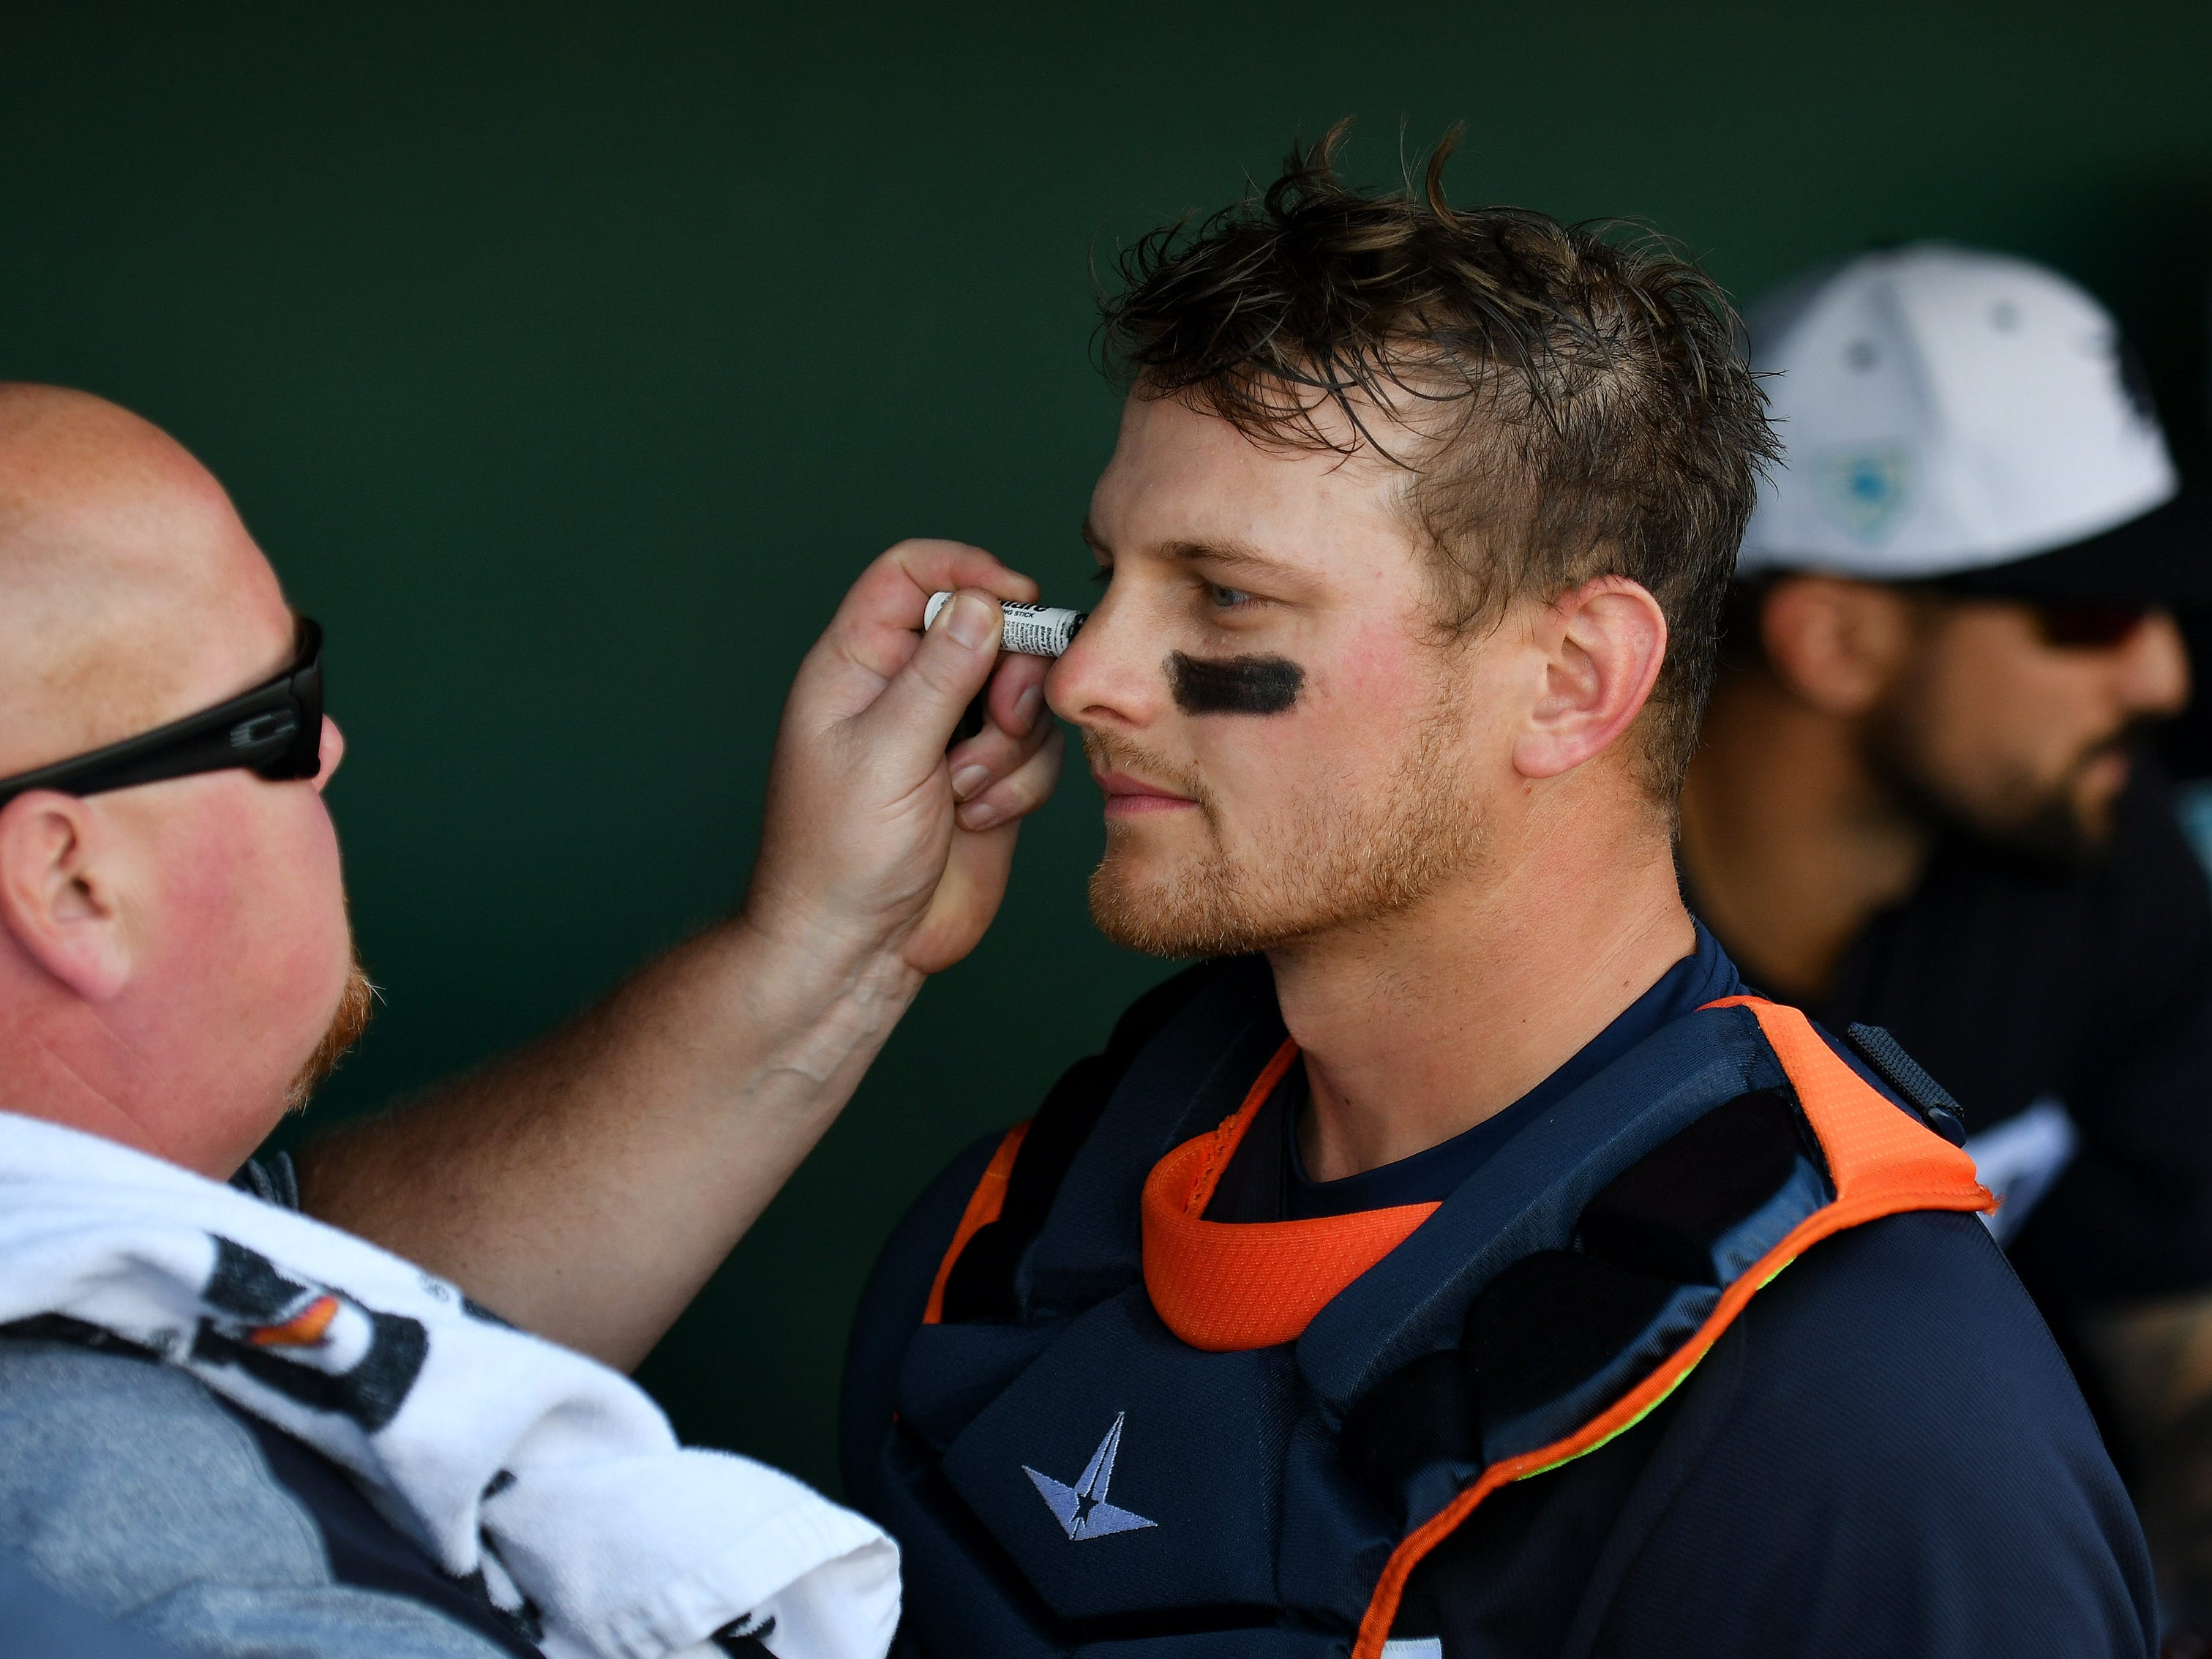 Tigers head athletic trainer Doug Teter puts eye black on catcher John Hicks at the start of the game. Detroit Tigers lose 10-6 to the Philadelphia Phillies at Publix Field at Joker Marchant Stadium in Lakeland, Fla. on Feb. 24, 2019.